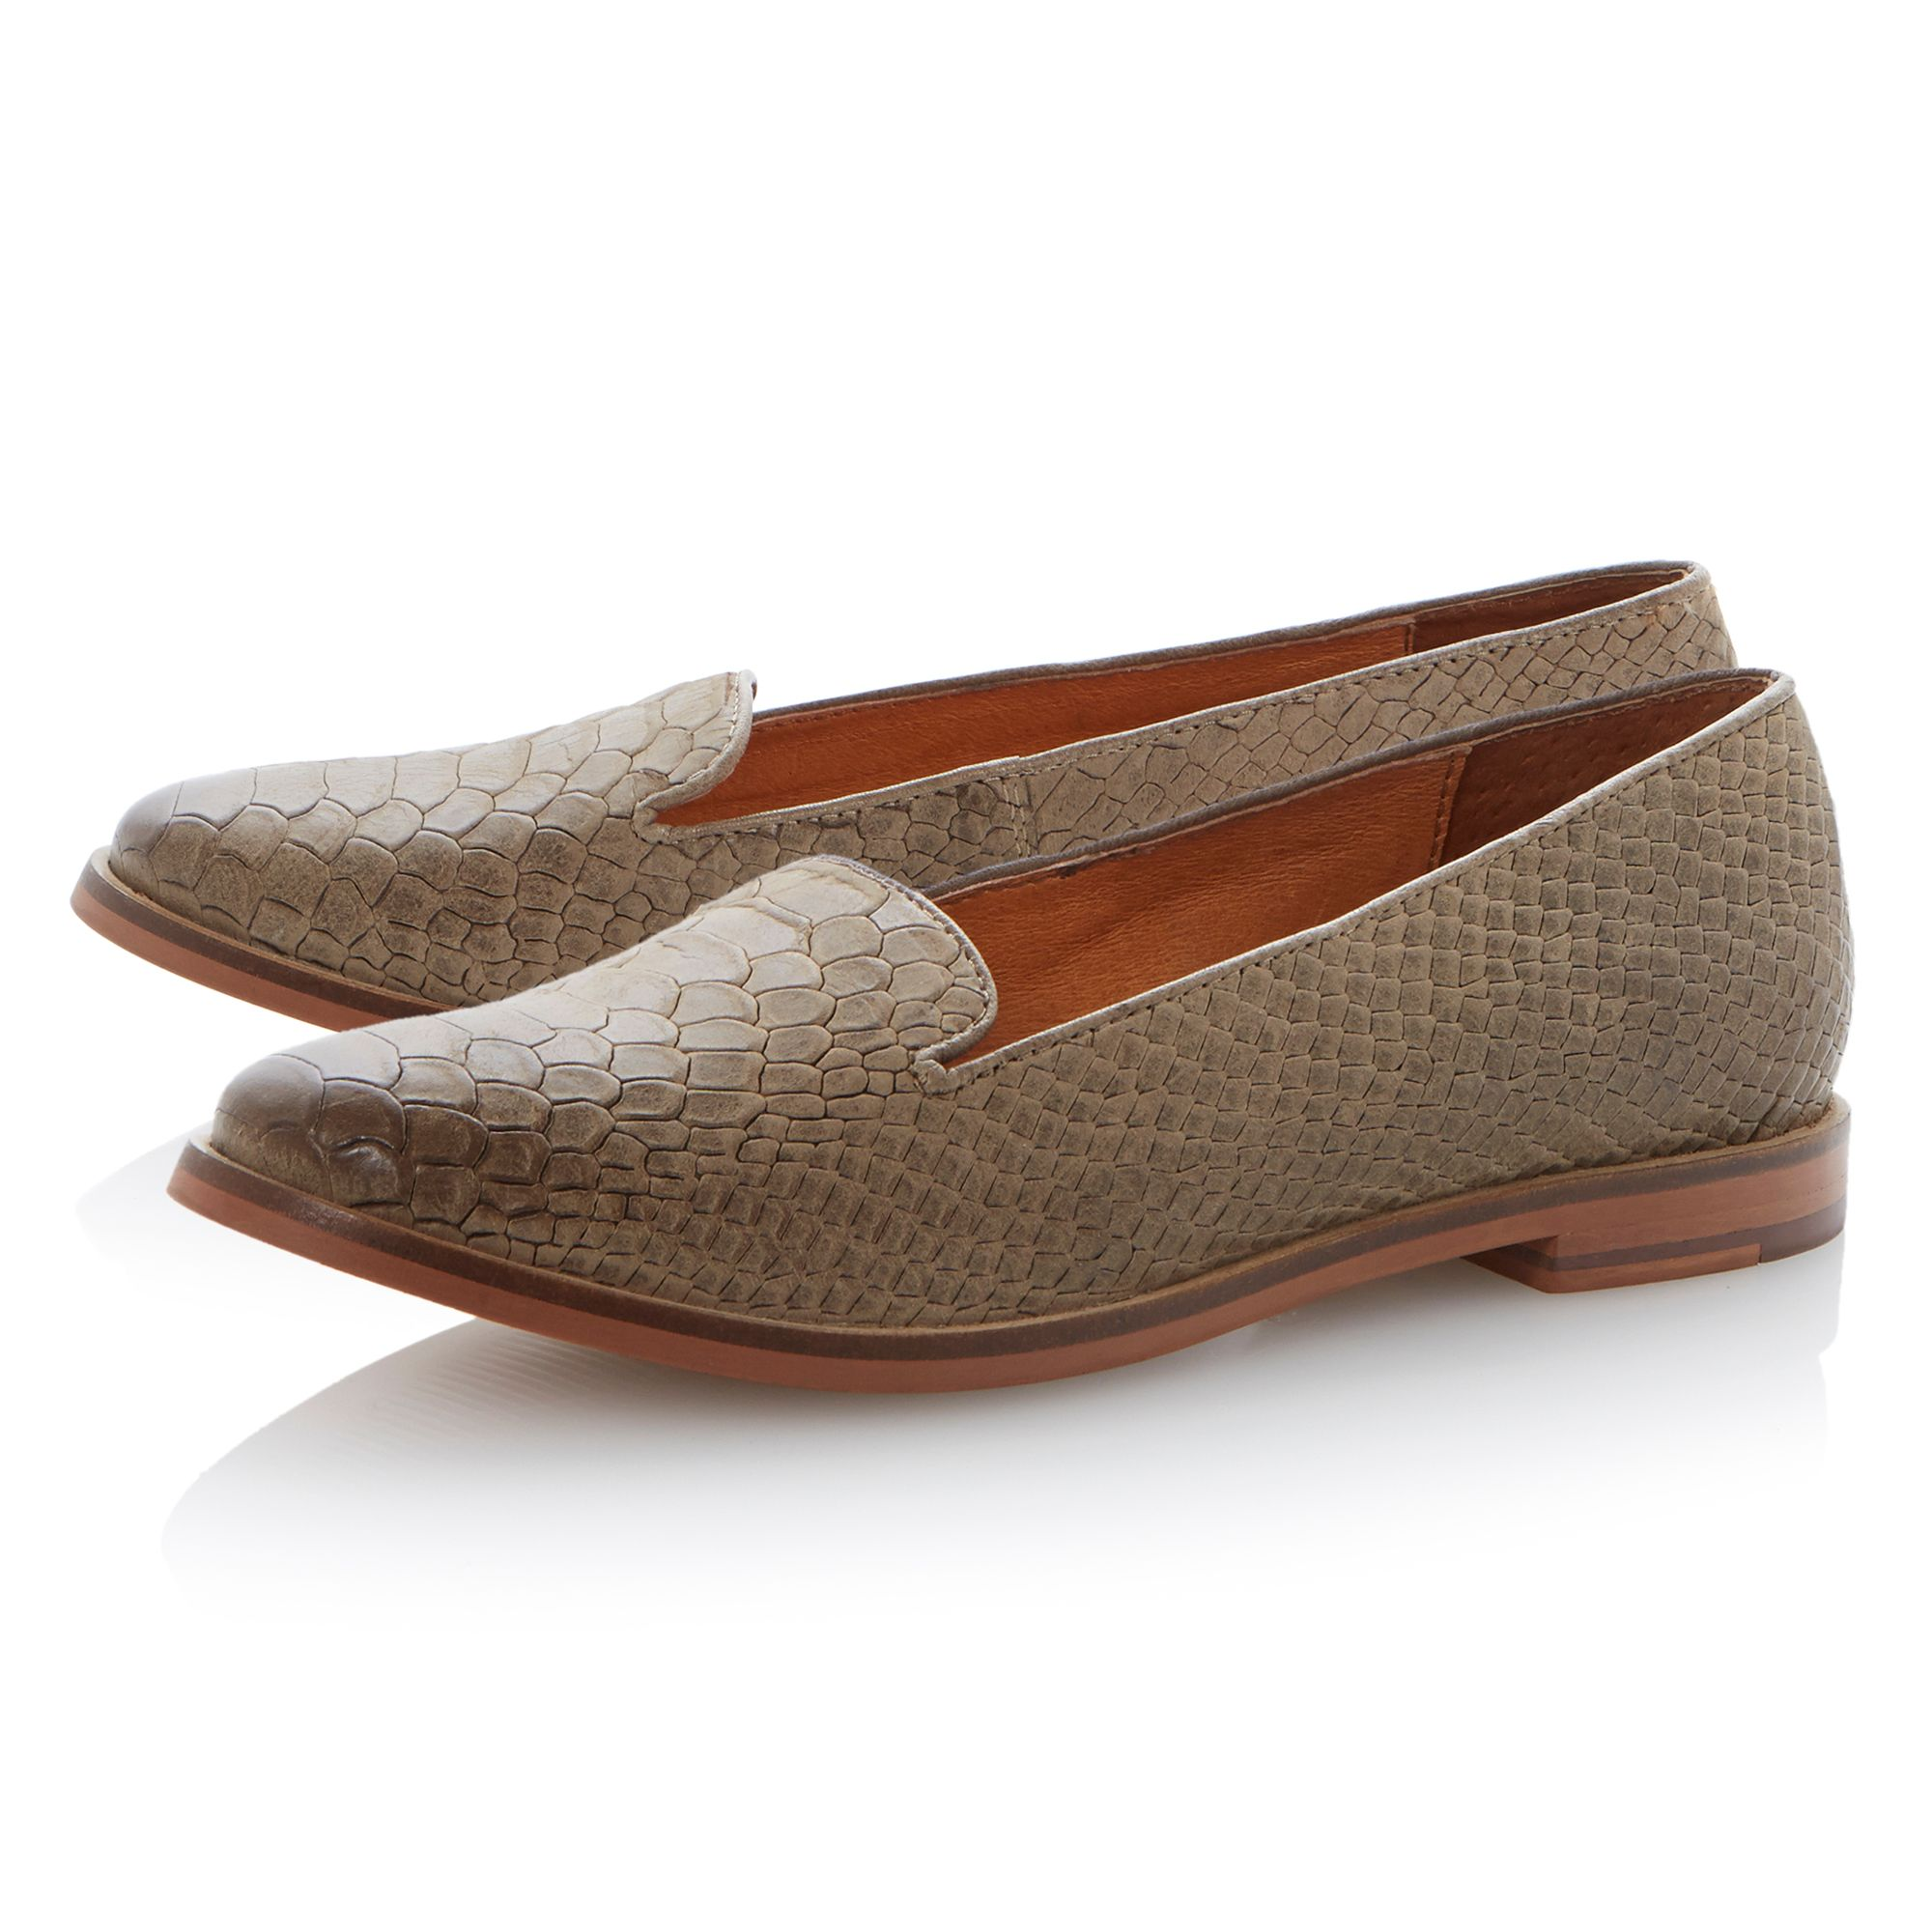 Lampo snake structured slipper shoes